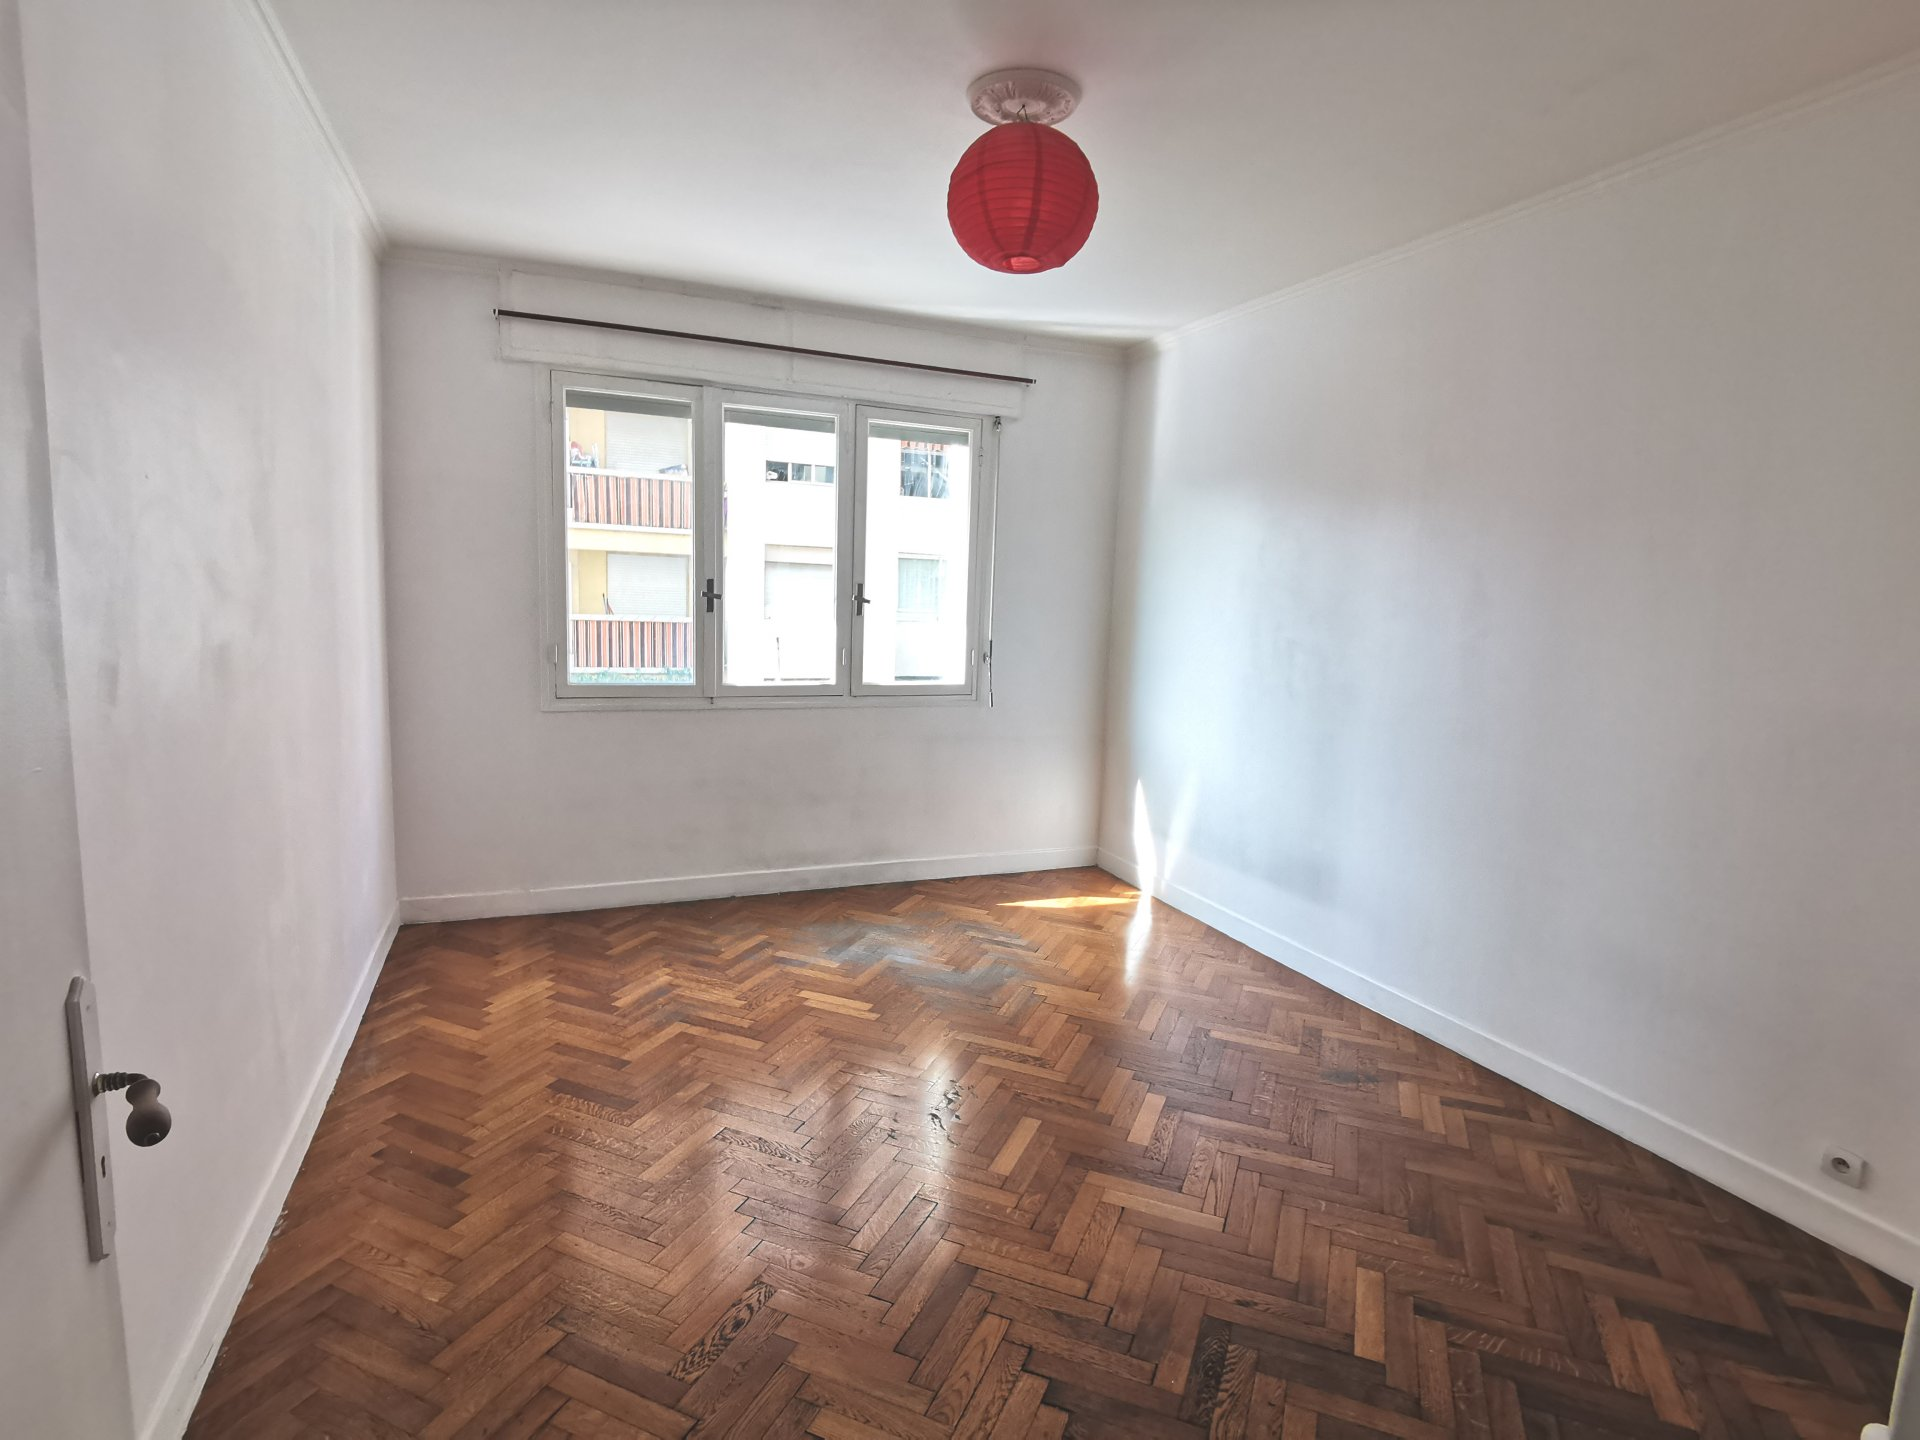 Flat close to the beach and all amenities